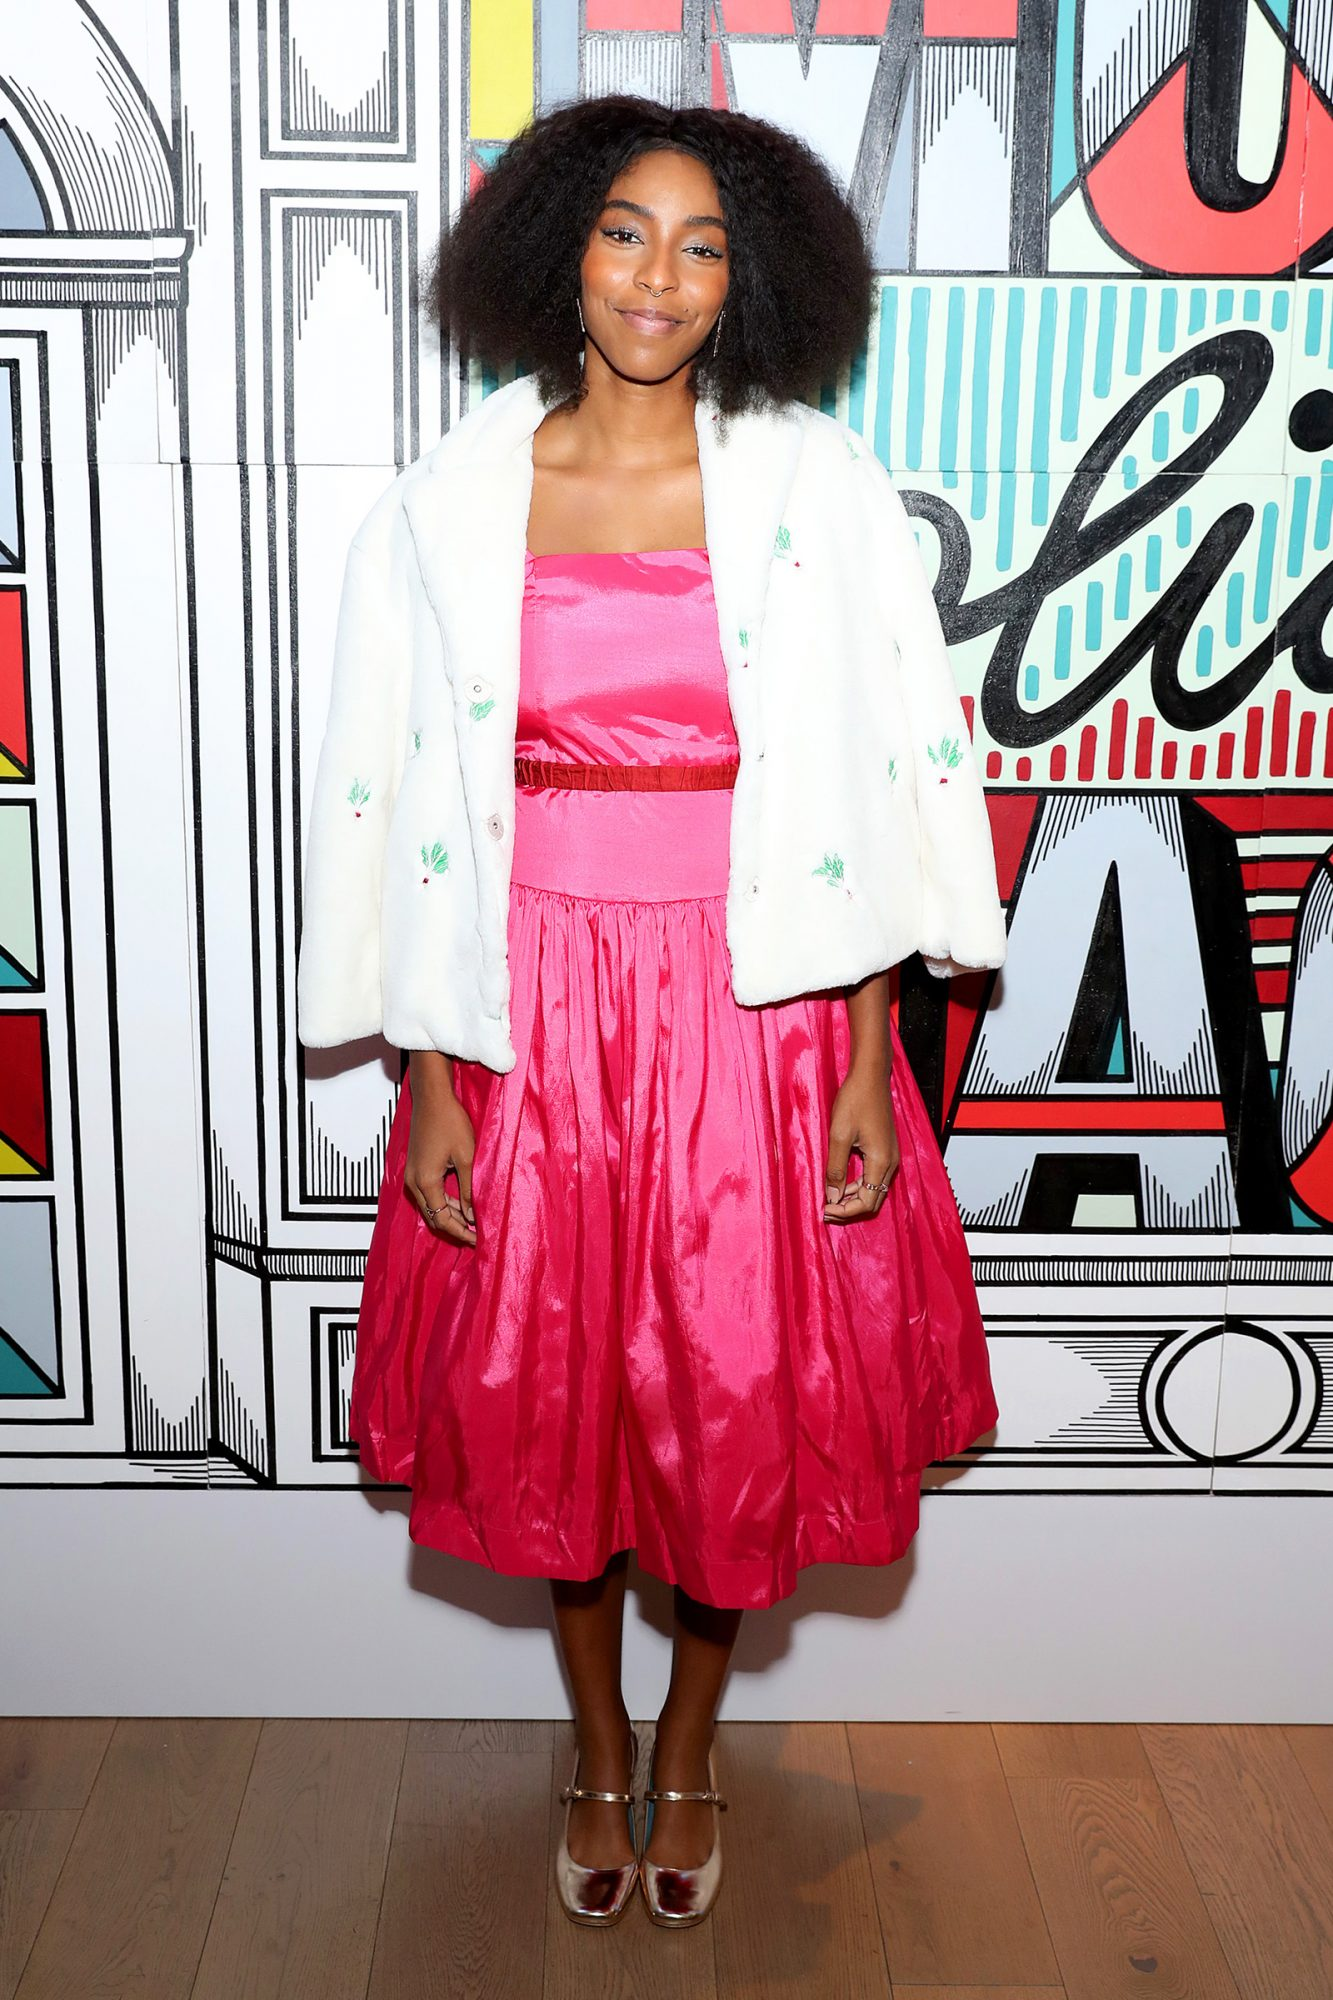 Jessica Williams attends Verizons More Holiday Magic Event at Manhatta on December 05, 2019 in New York City